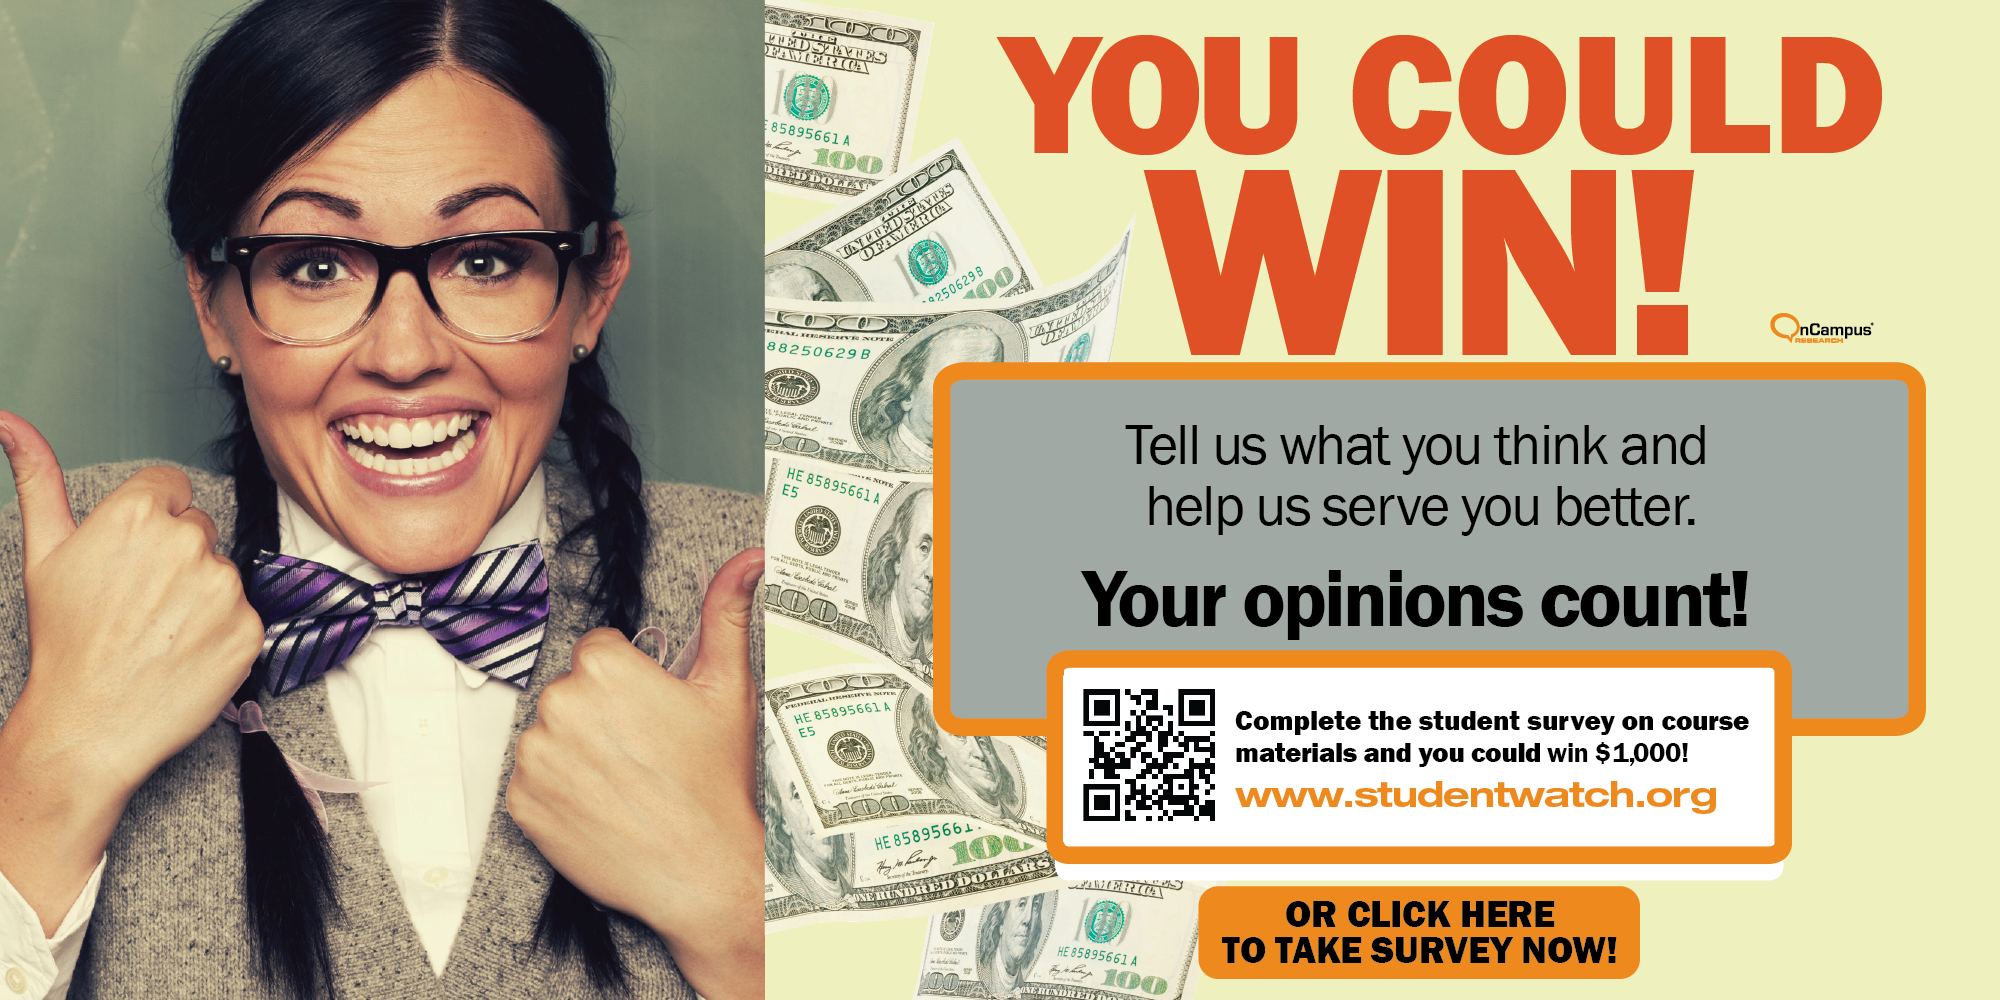 You could win by taking the student watch survey.